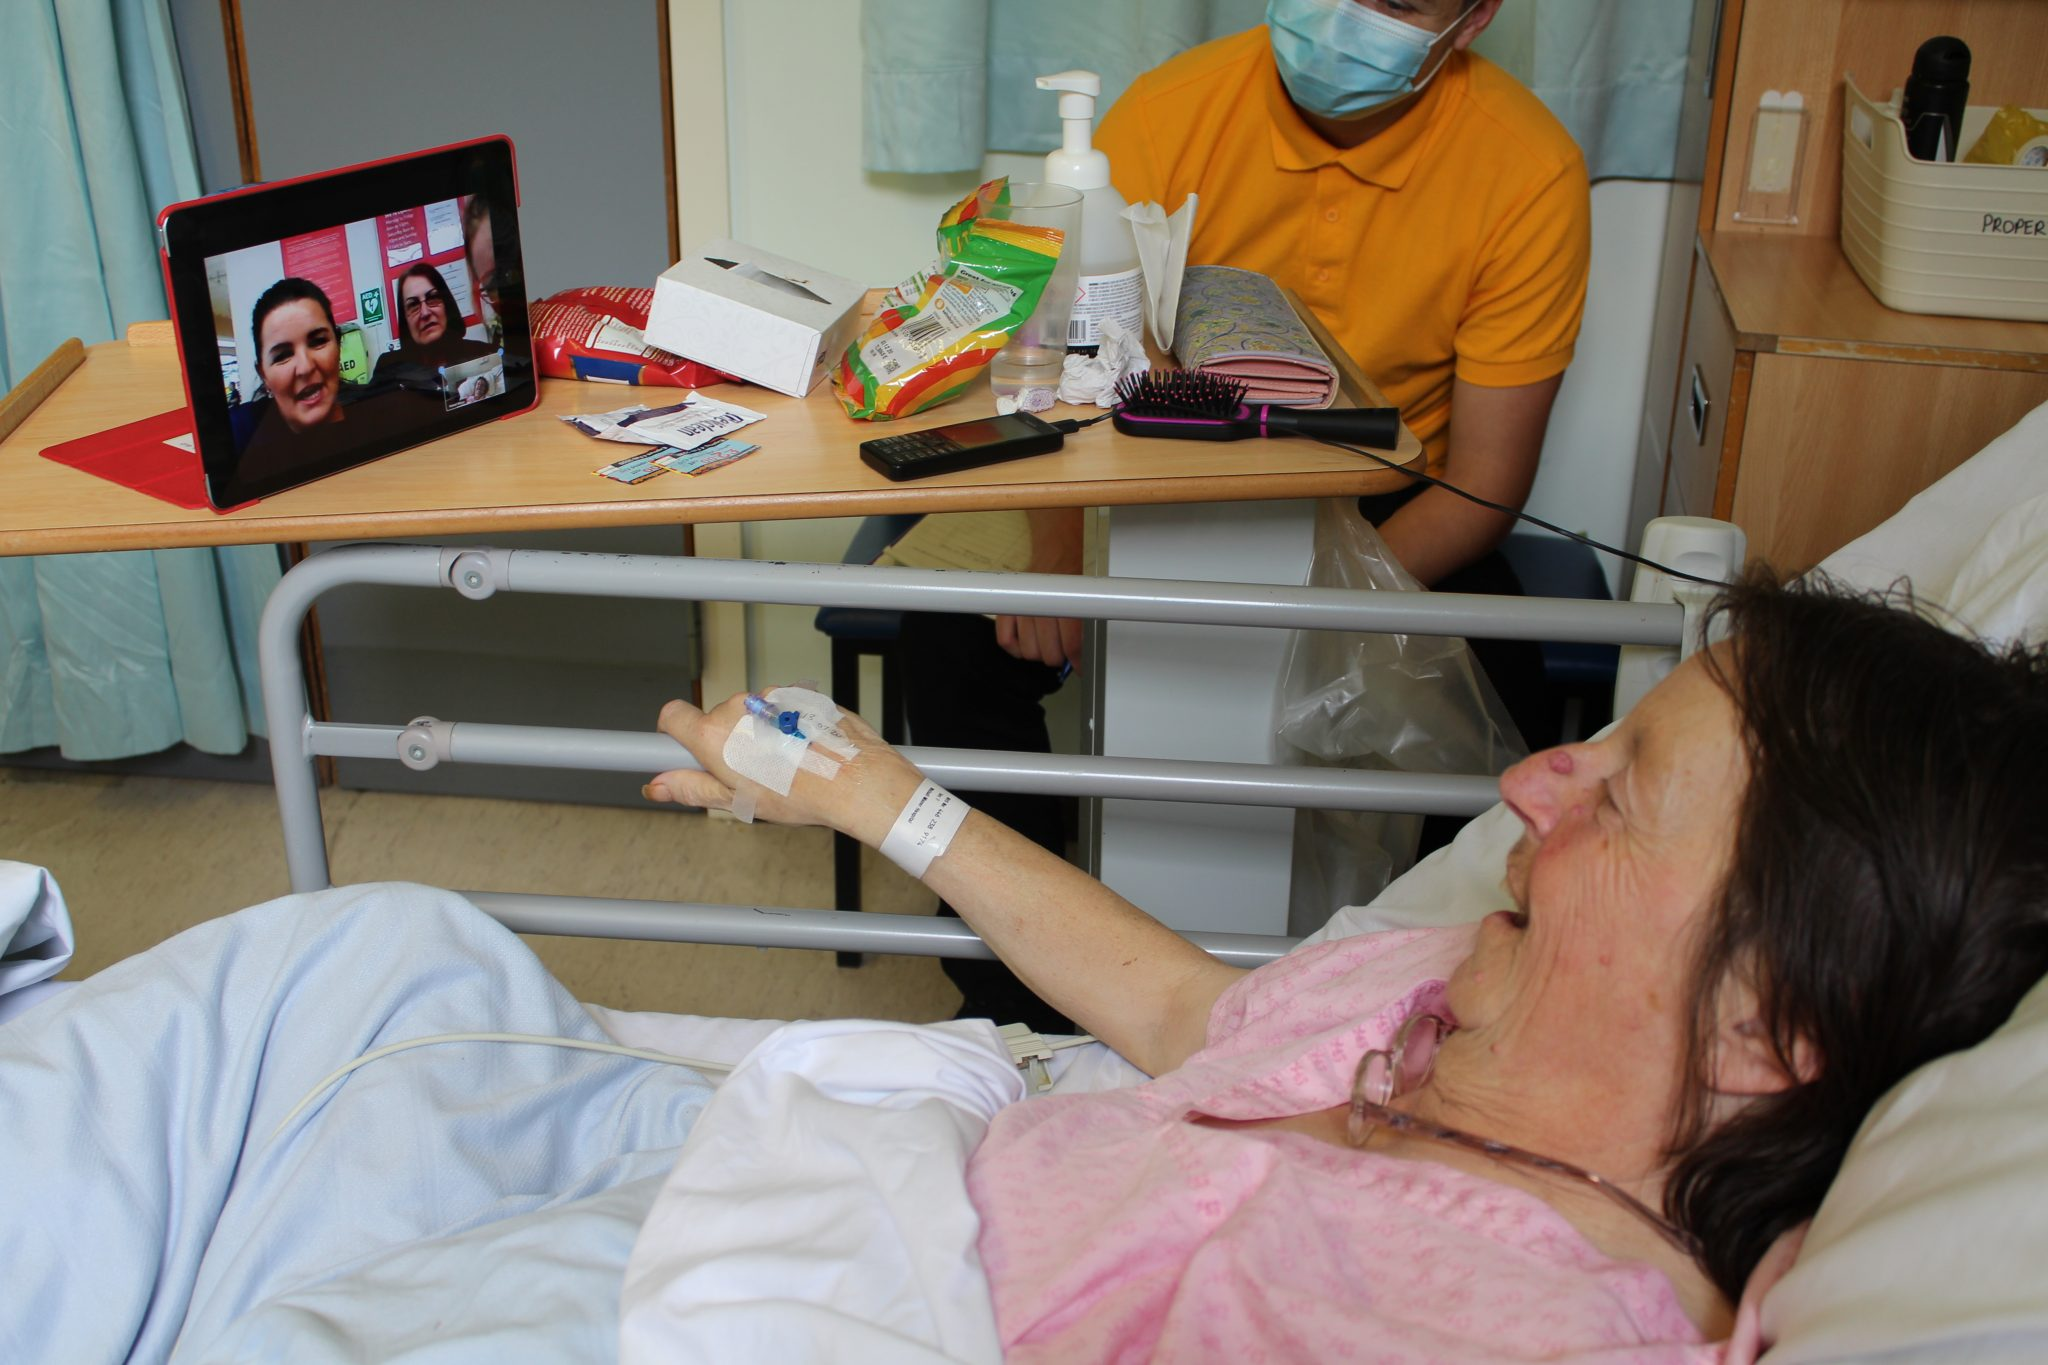 patient on video call